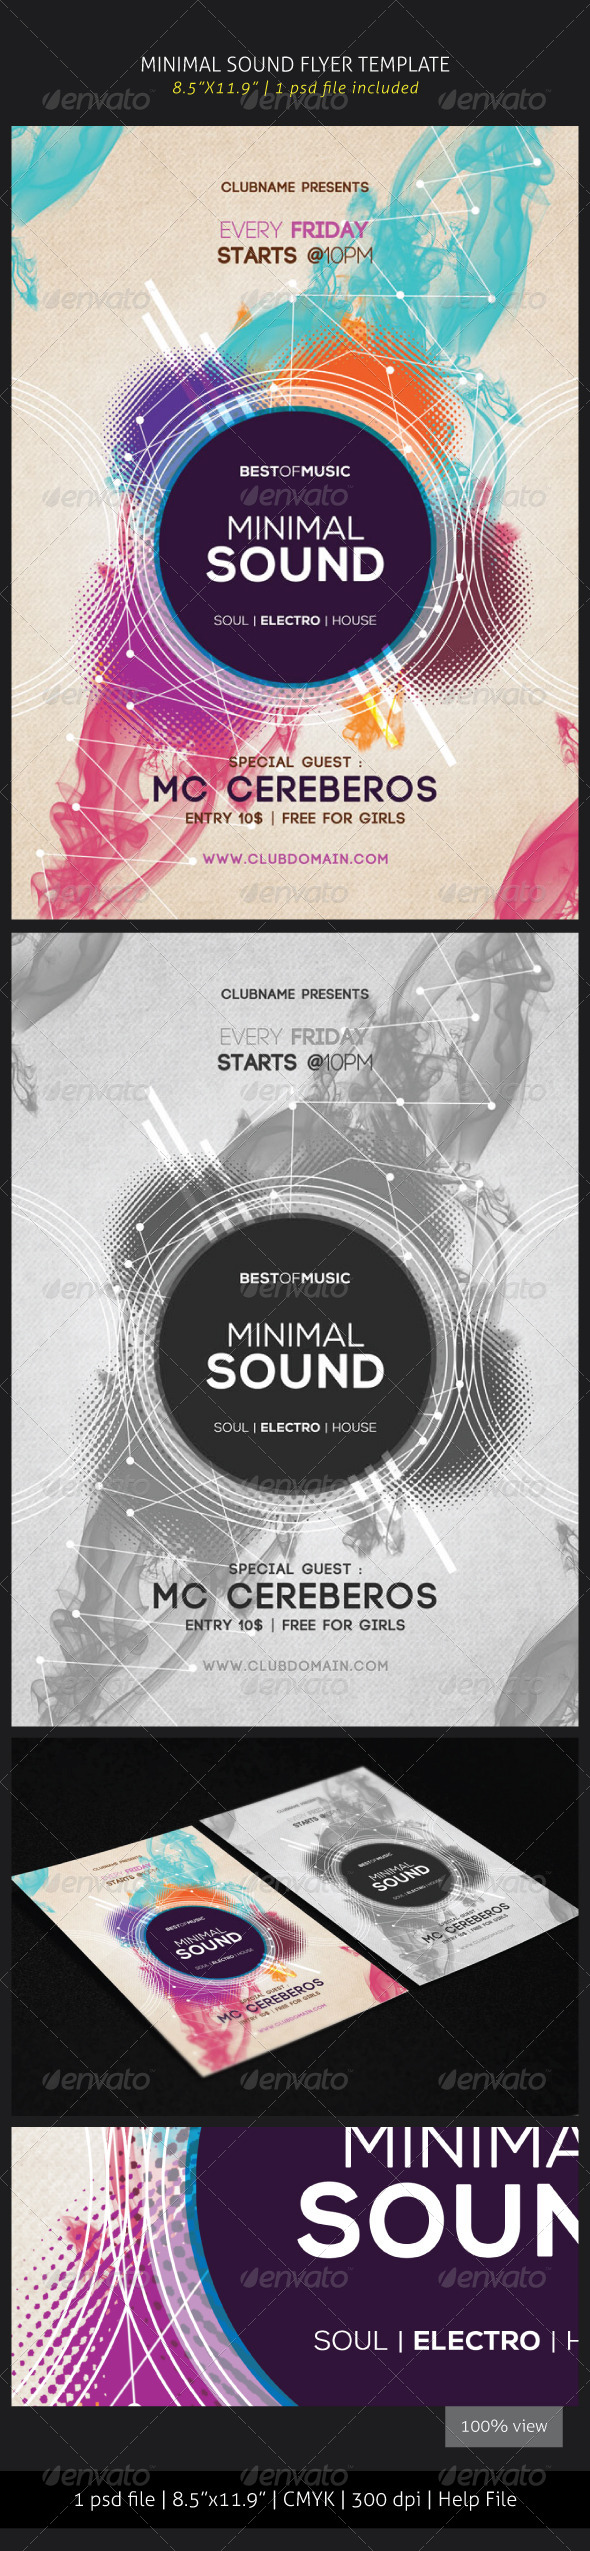 GraphicRiver Minimal Sound Flyer Template 5816751